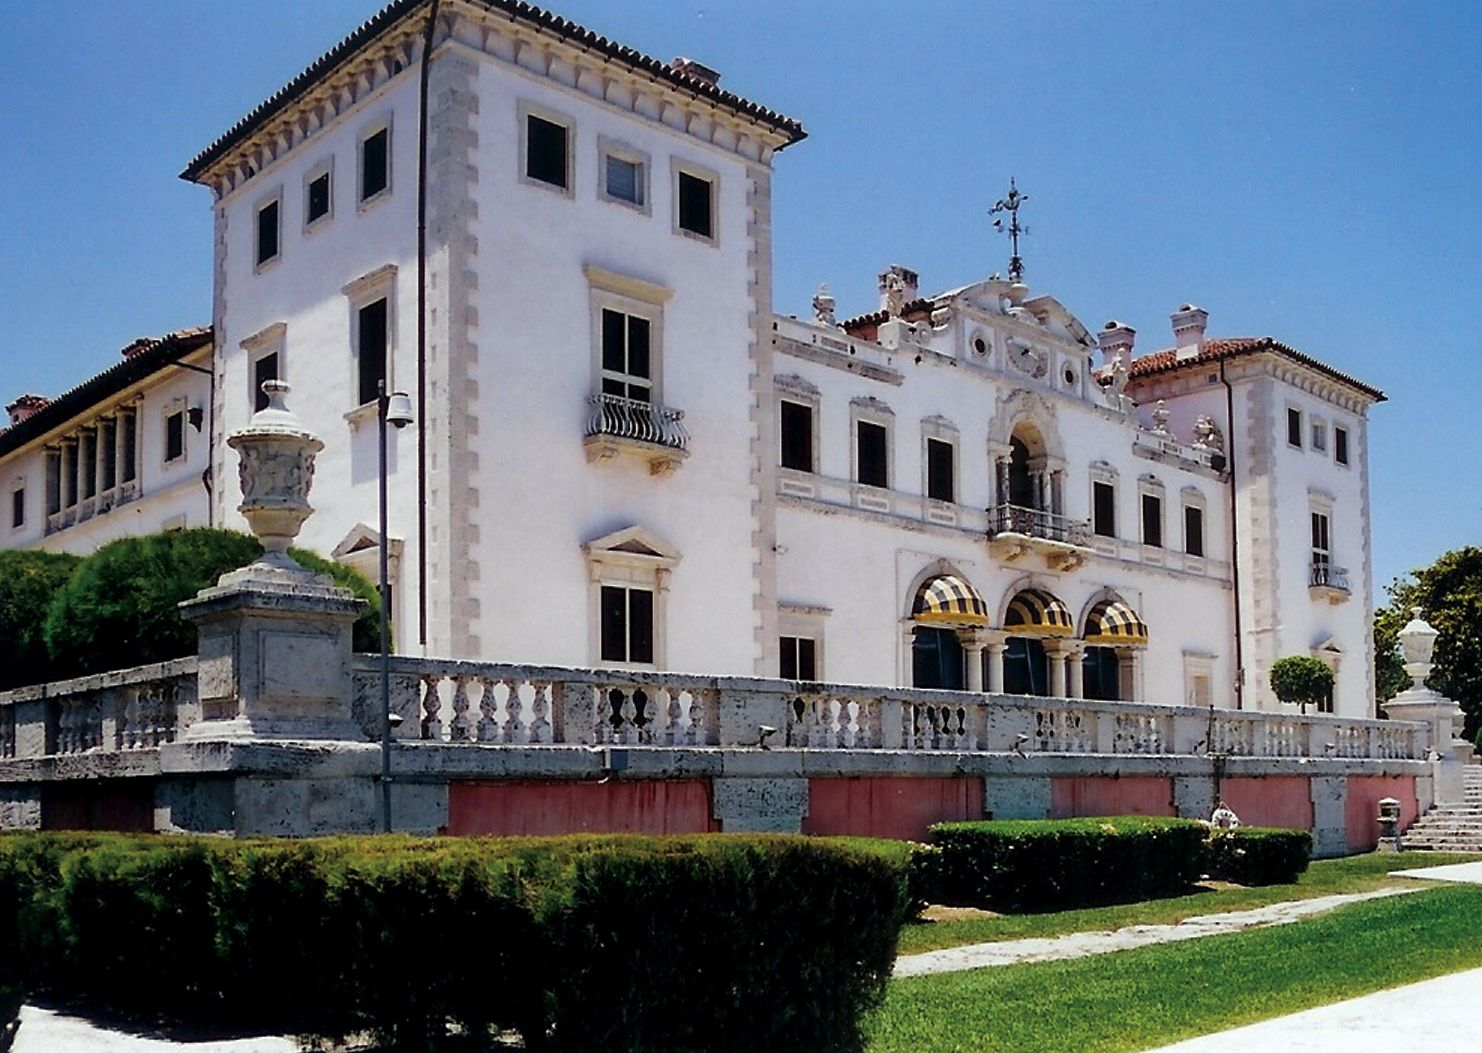 Vizcaya in Miami, Florida.  Built in the early 1900's after the Venetian Palaces.  The house and Gardens are Amazing!